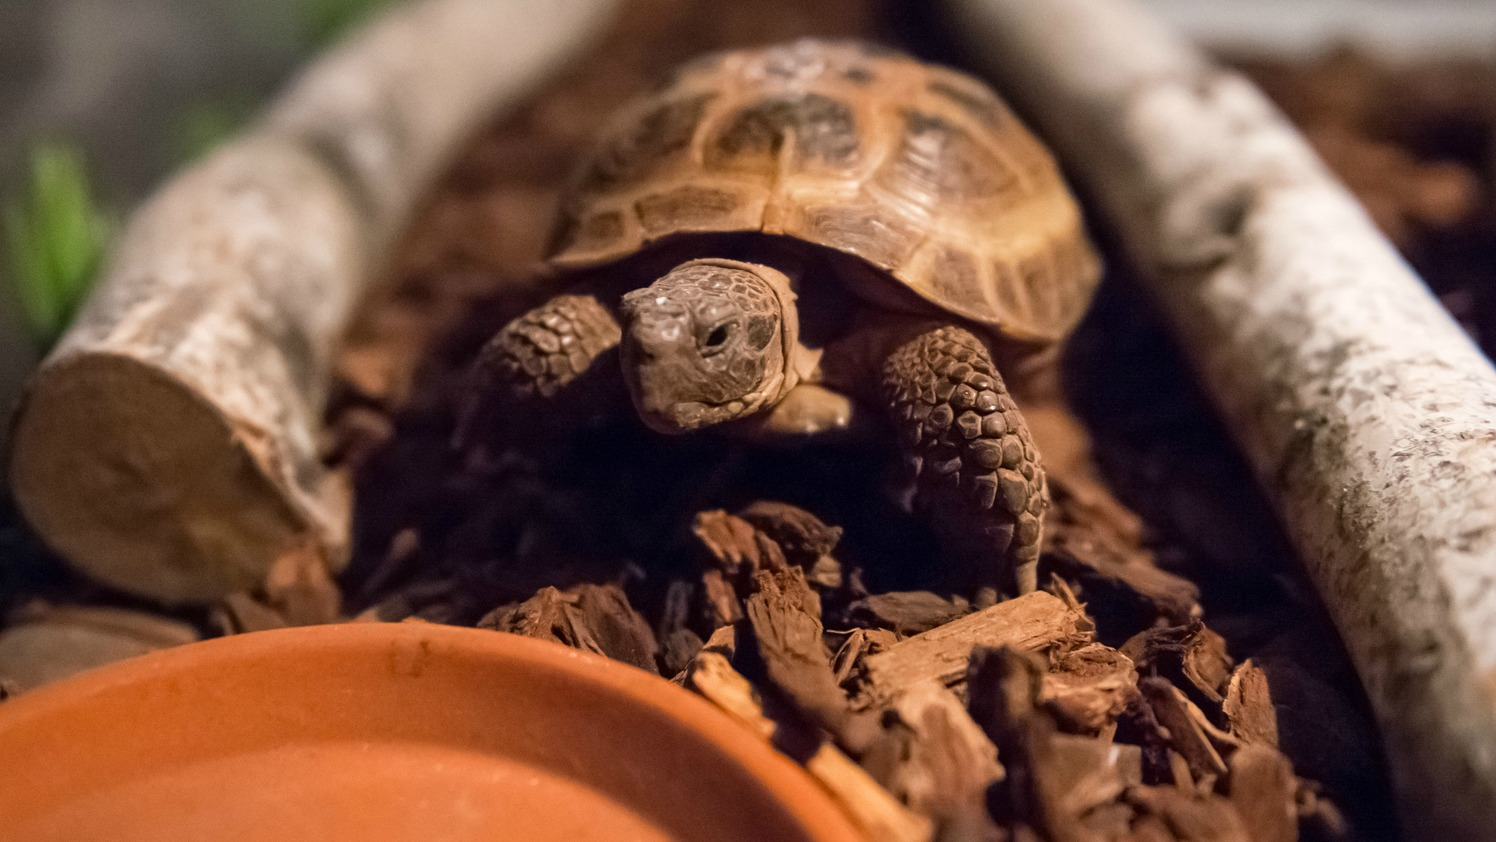 Fact #1: Clyde is a Horsfield's tortoise (a.k.a. a Russian or Central Asian tortoise).